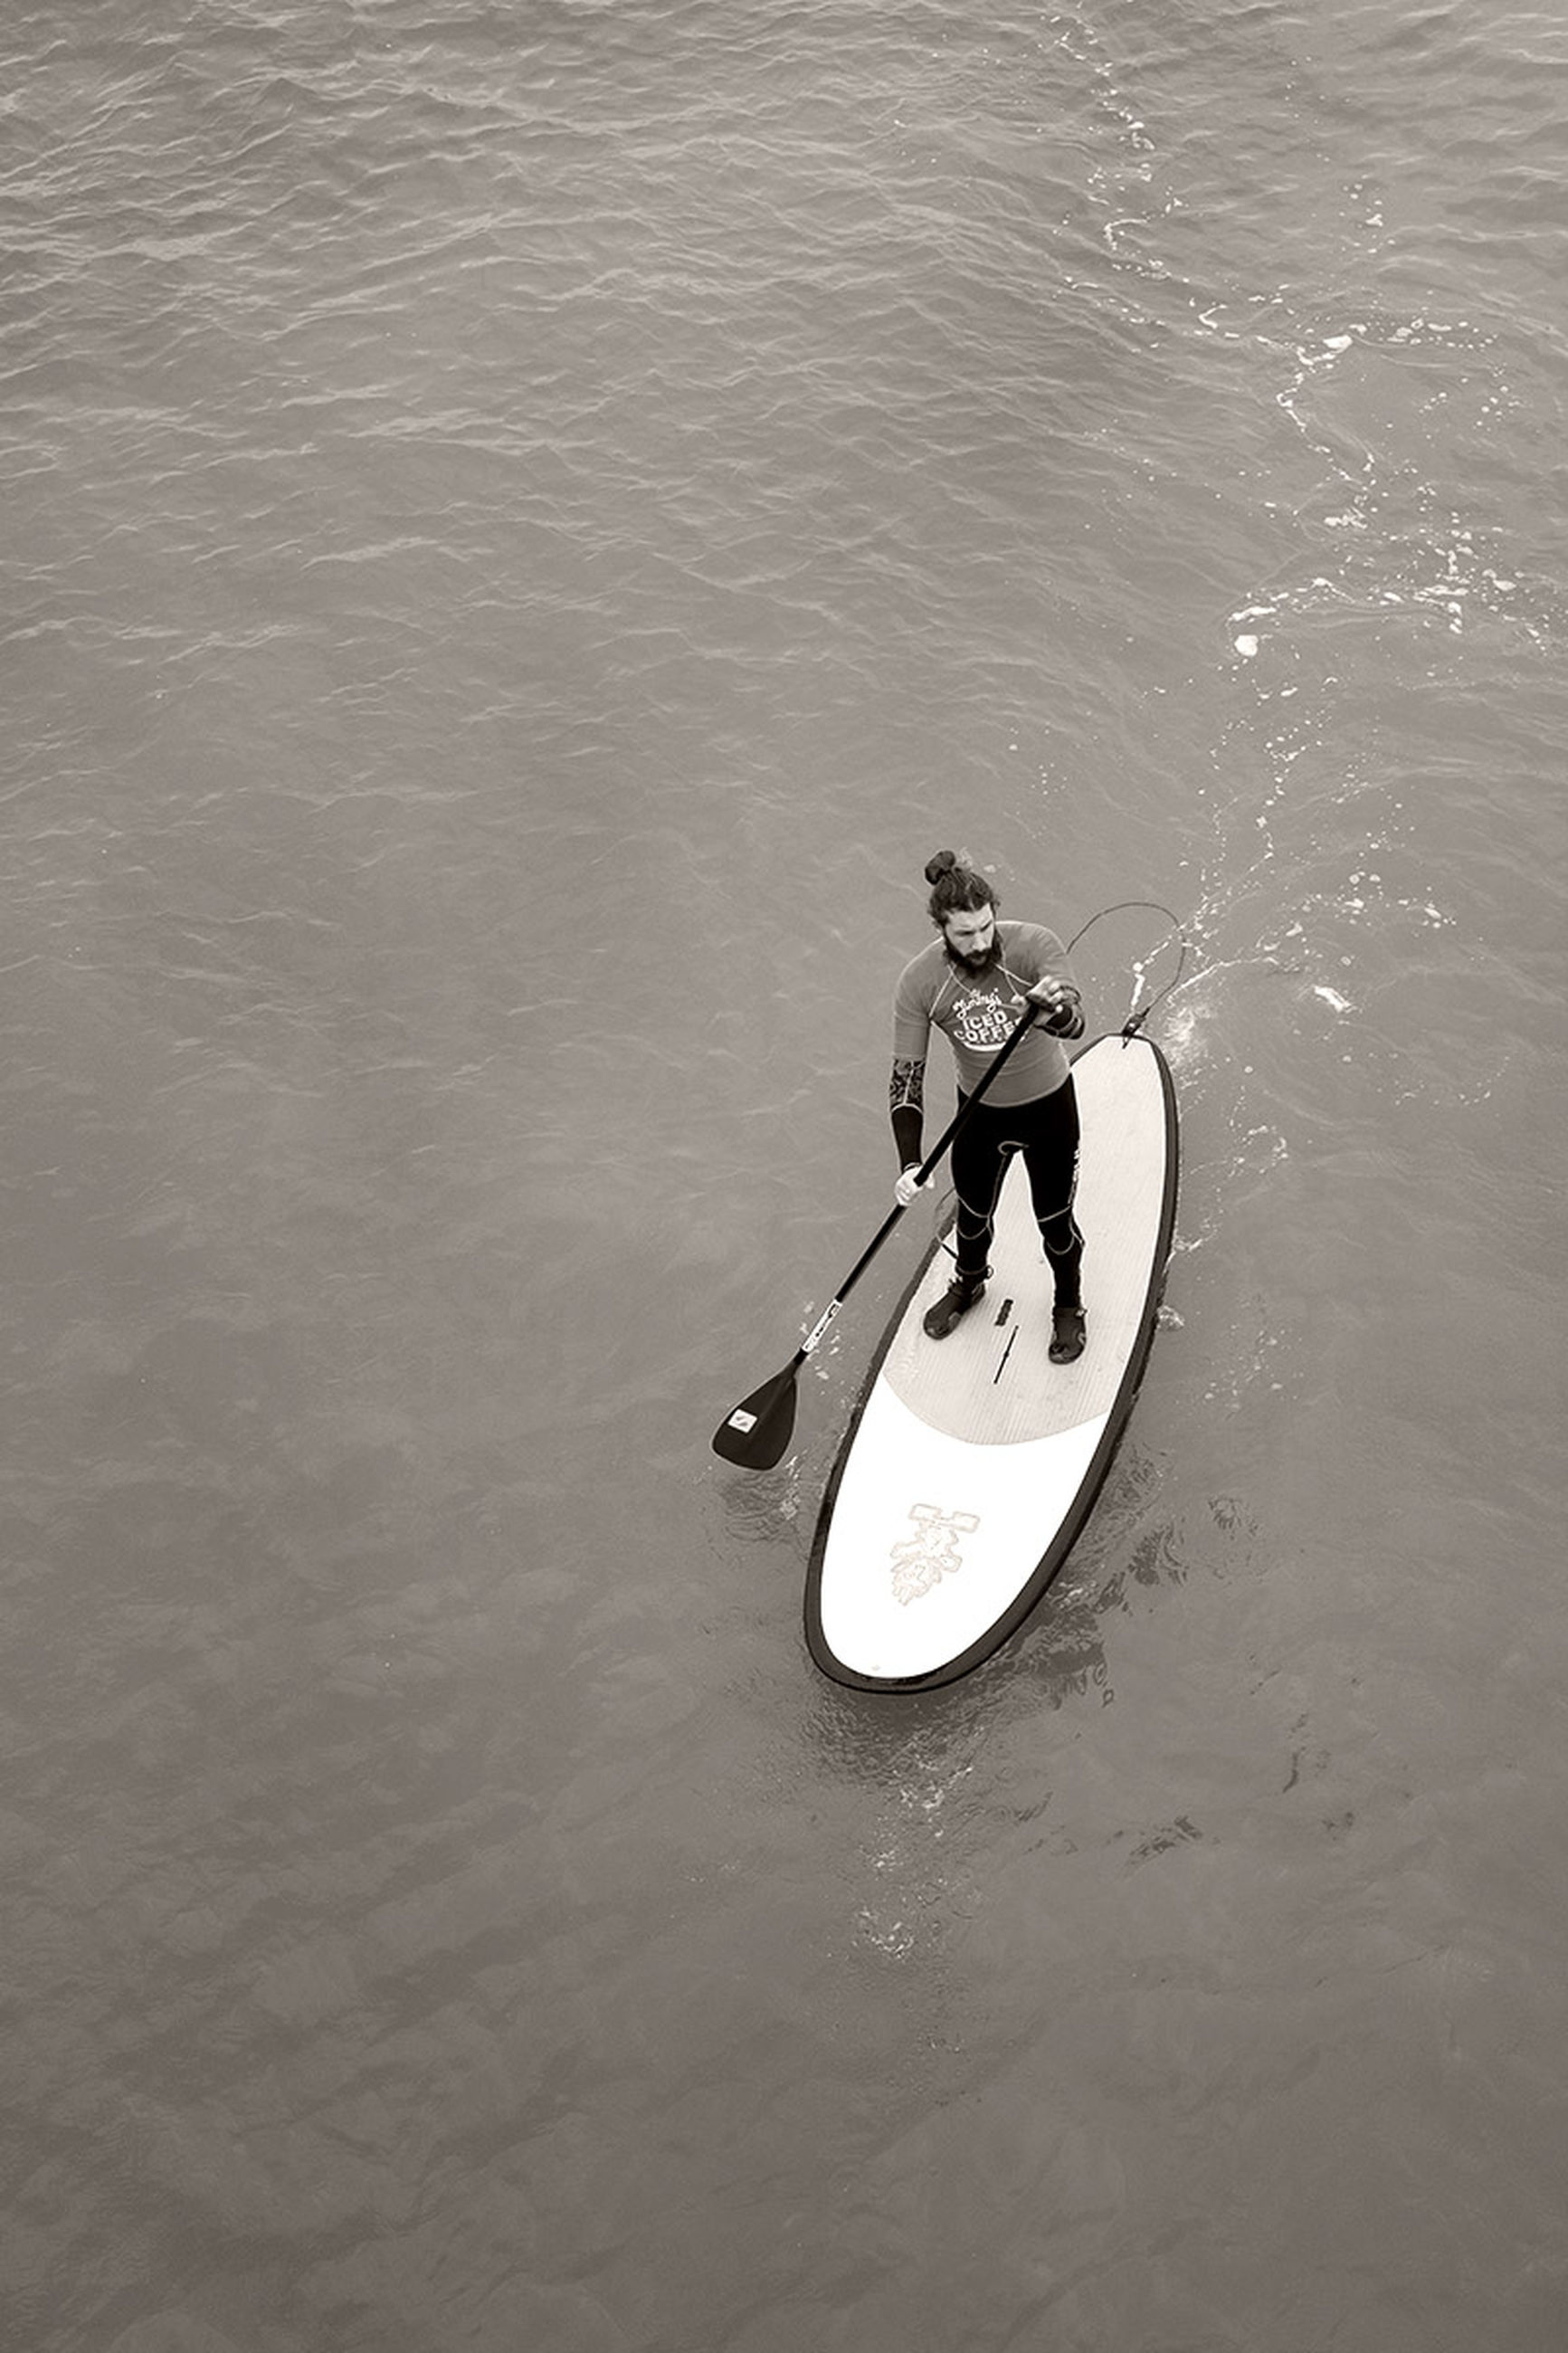 water, leisure activity, high angle view, lifestyles, men, waterfront, full length, skill, motion, sport, sea, reflection, day, transportation, hobbies, vacations, outdoors